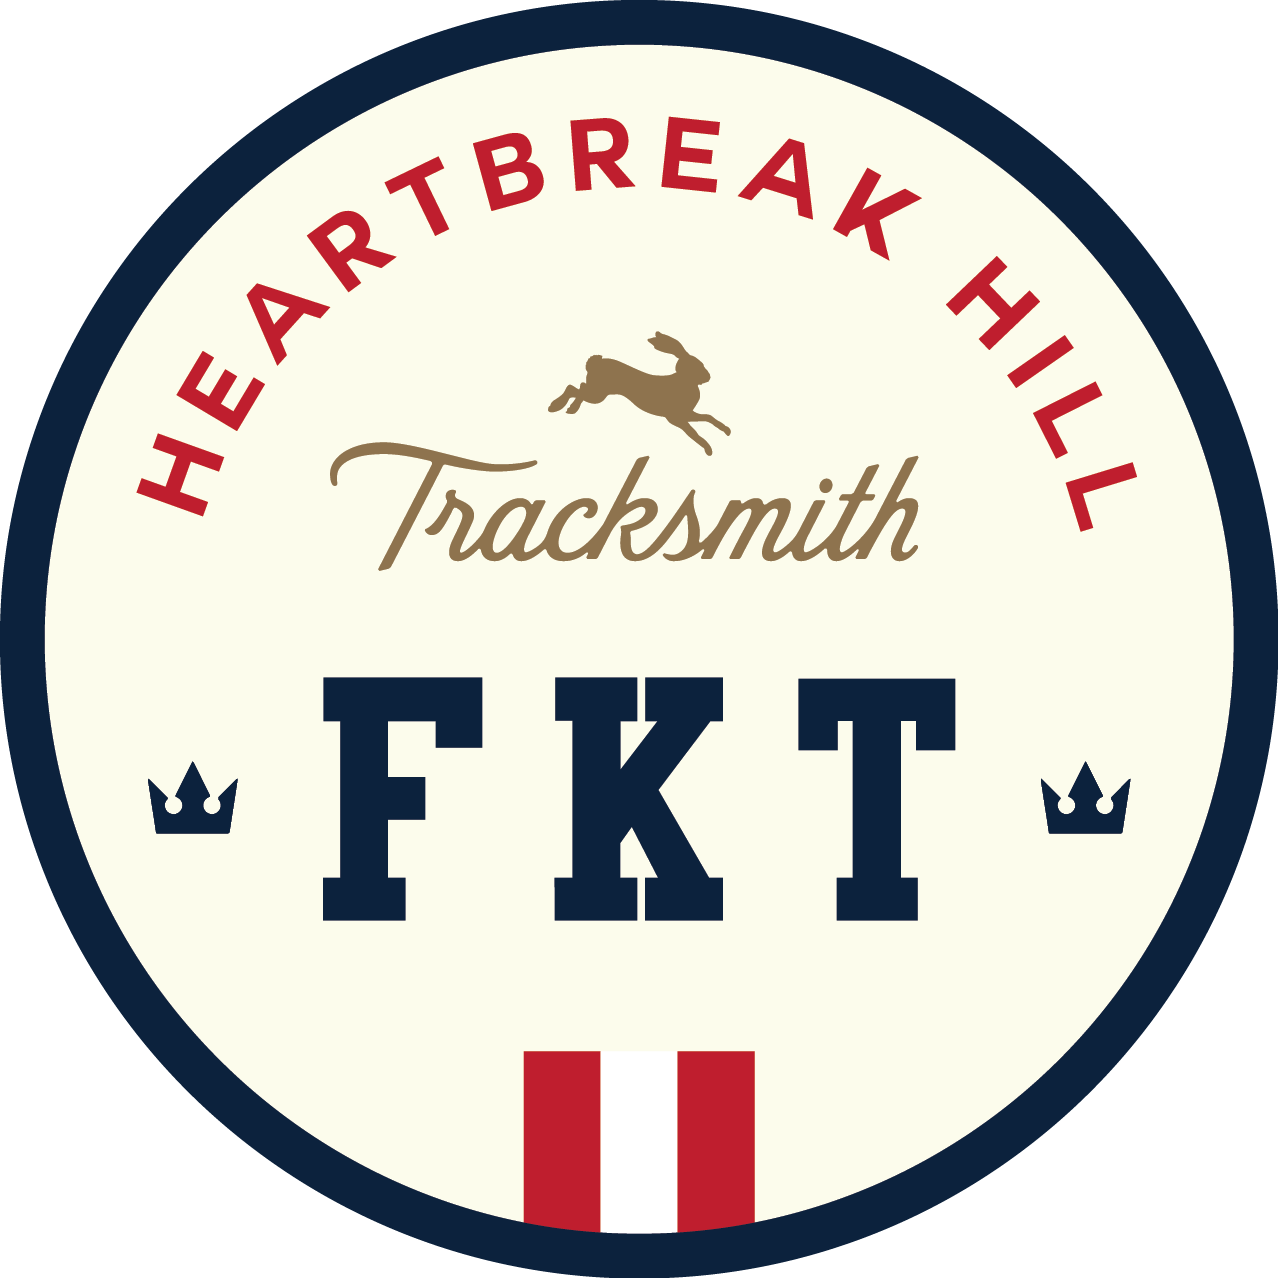 Tracksmith Heartbreak Hill FKT